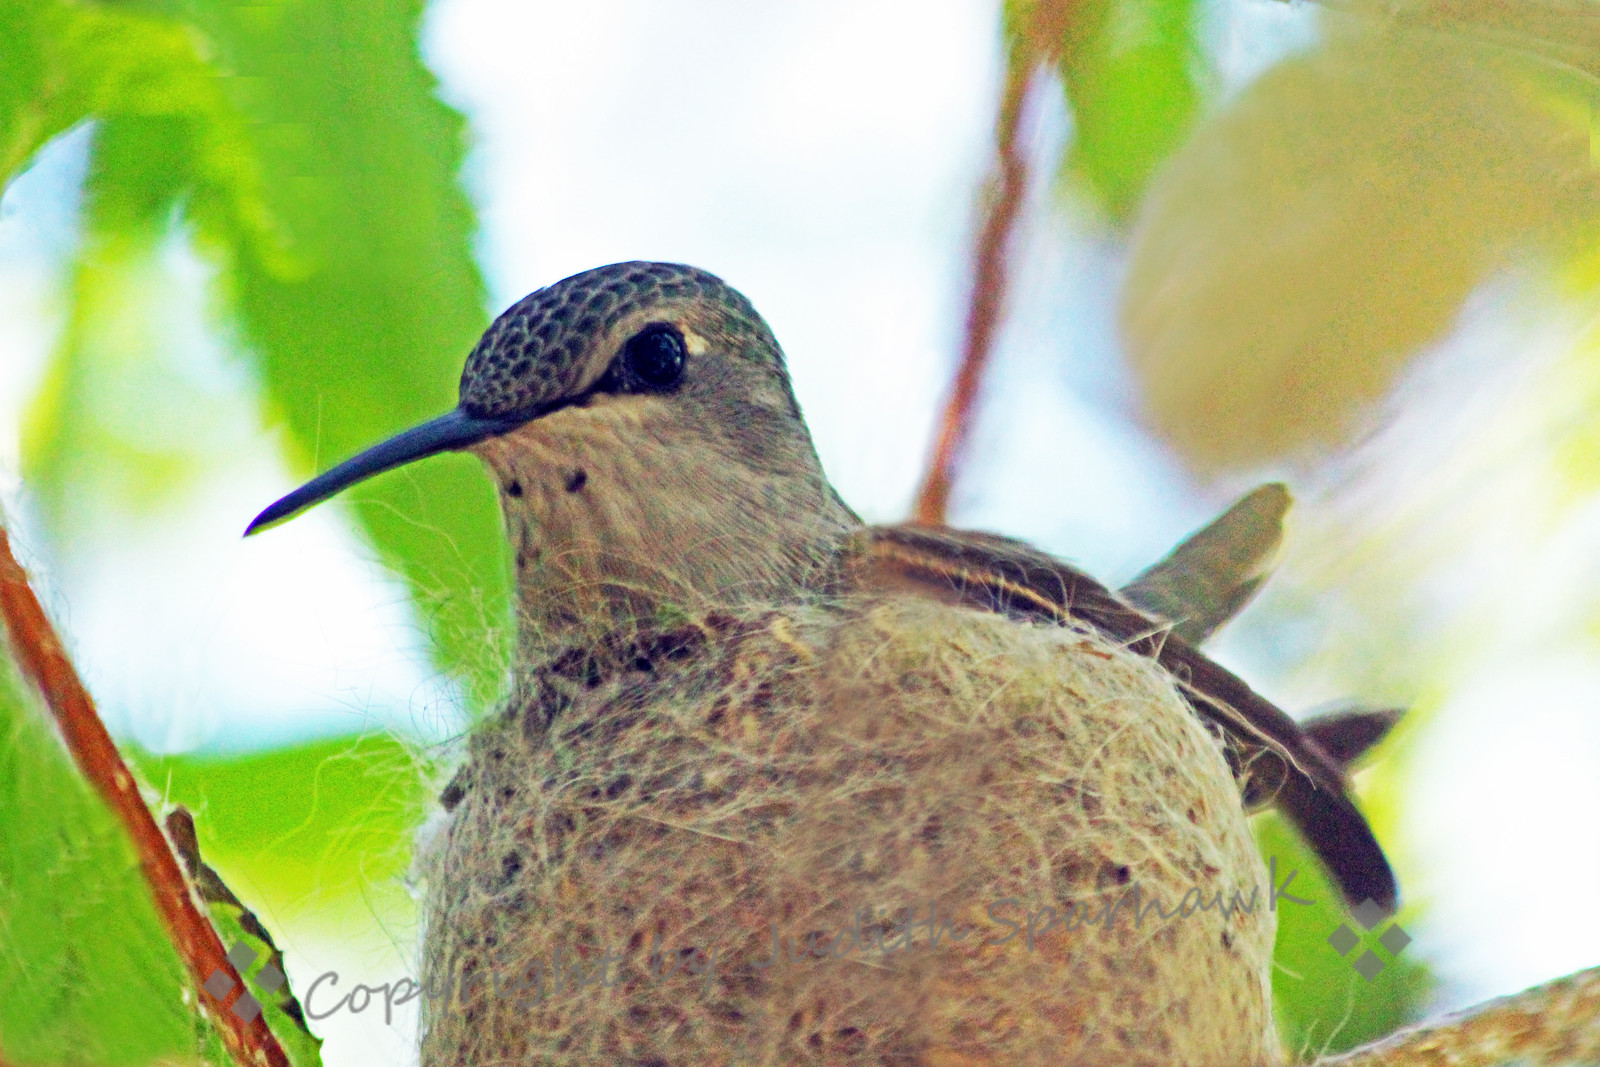 Nesting Costa's Hummingbird ~ This mother-to-be sat on the nest patiently, despite my photographing her.  I hope she has two little baby-hummers soon.